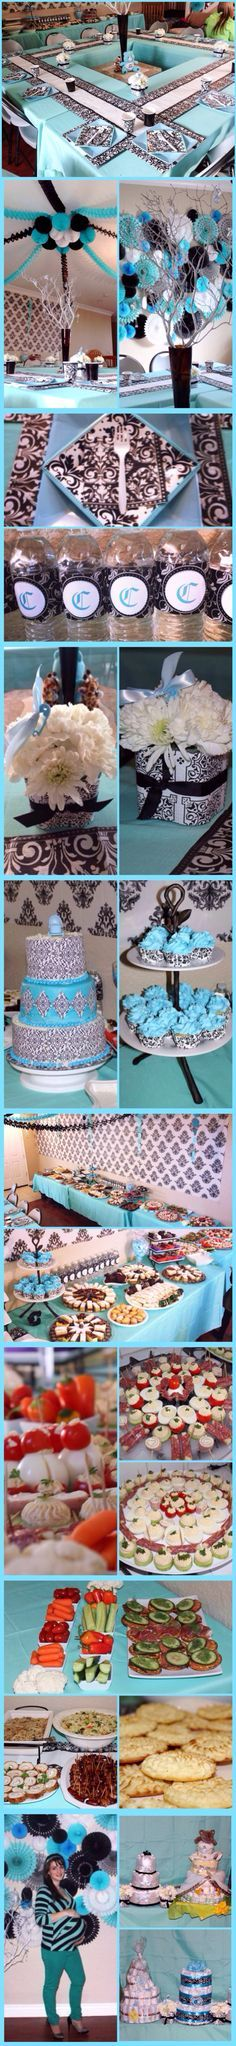 Damask Baby Shower for BOY - Teal, Black, & White. My husband did a fabulous job with the set up!